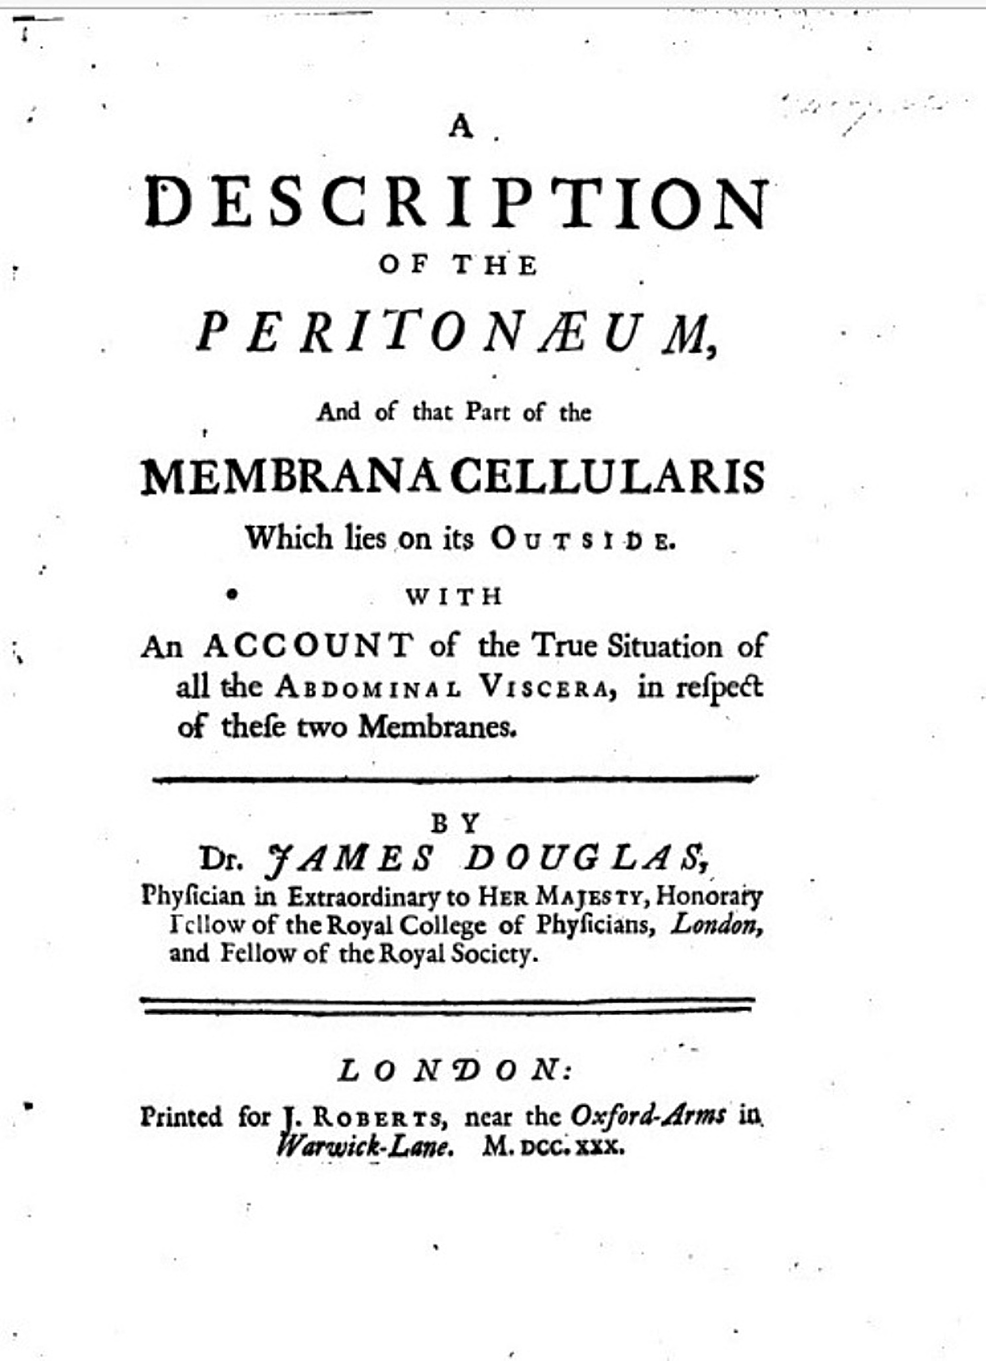 """The-cover-page-of-the-famous-book-by-James-Douglas-named-""""A-Description-of-the-Peritoneum,-and-of-that-Part-of-the-Membrana-Cellularis-which-lies-on-its-Outside,-with-an-Account-of-the-True-Situation-of-all-the-Abdominal-Viscera""""-published-in-1730.-In-this-book,-for-the-first-time,-is-recorded-the-famous-""""pouch-of-Douglas.""""-Public-domain."""